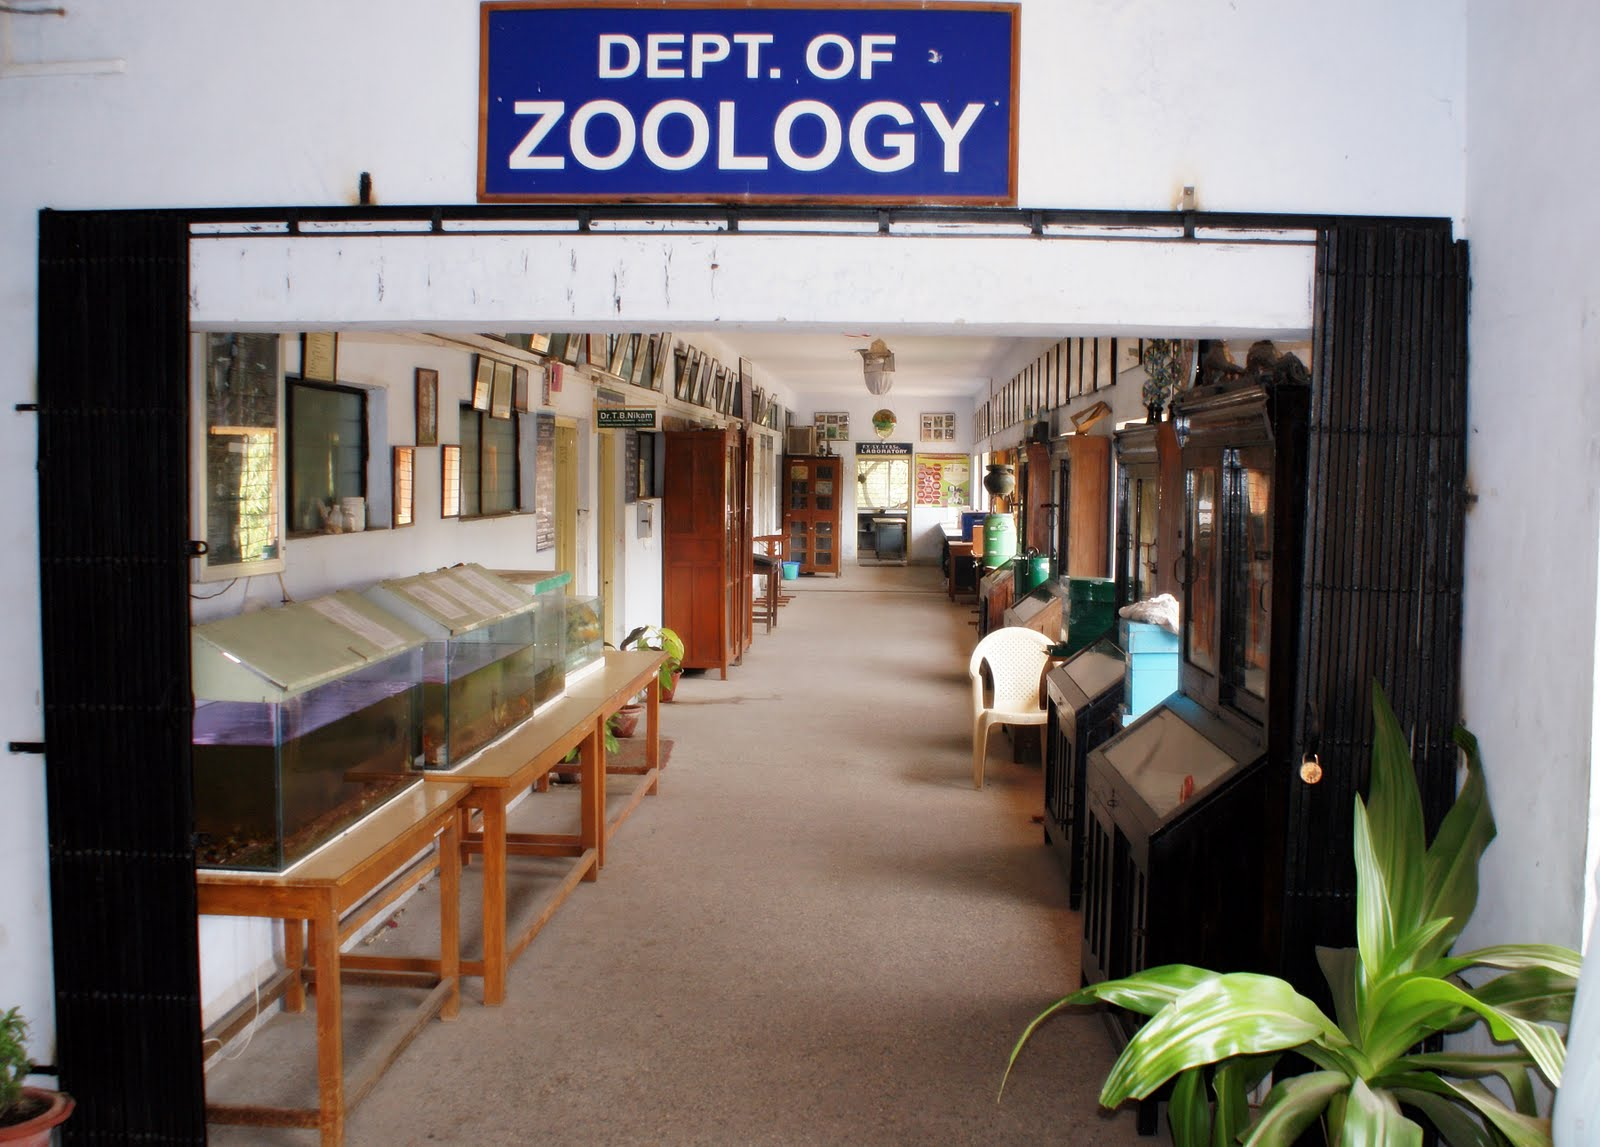 Zoology samples of research work